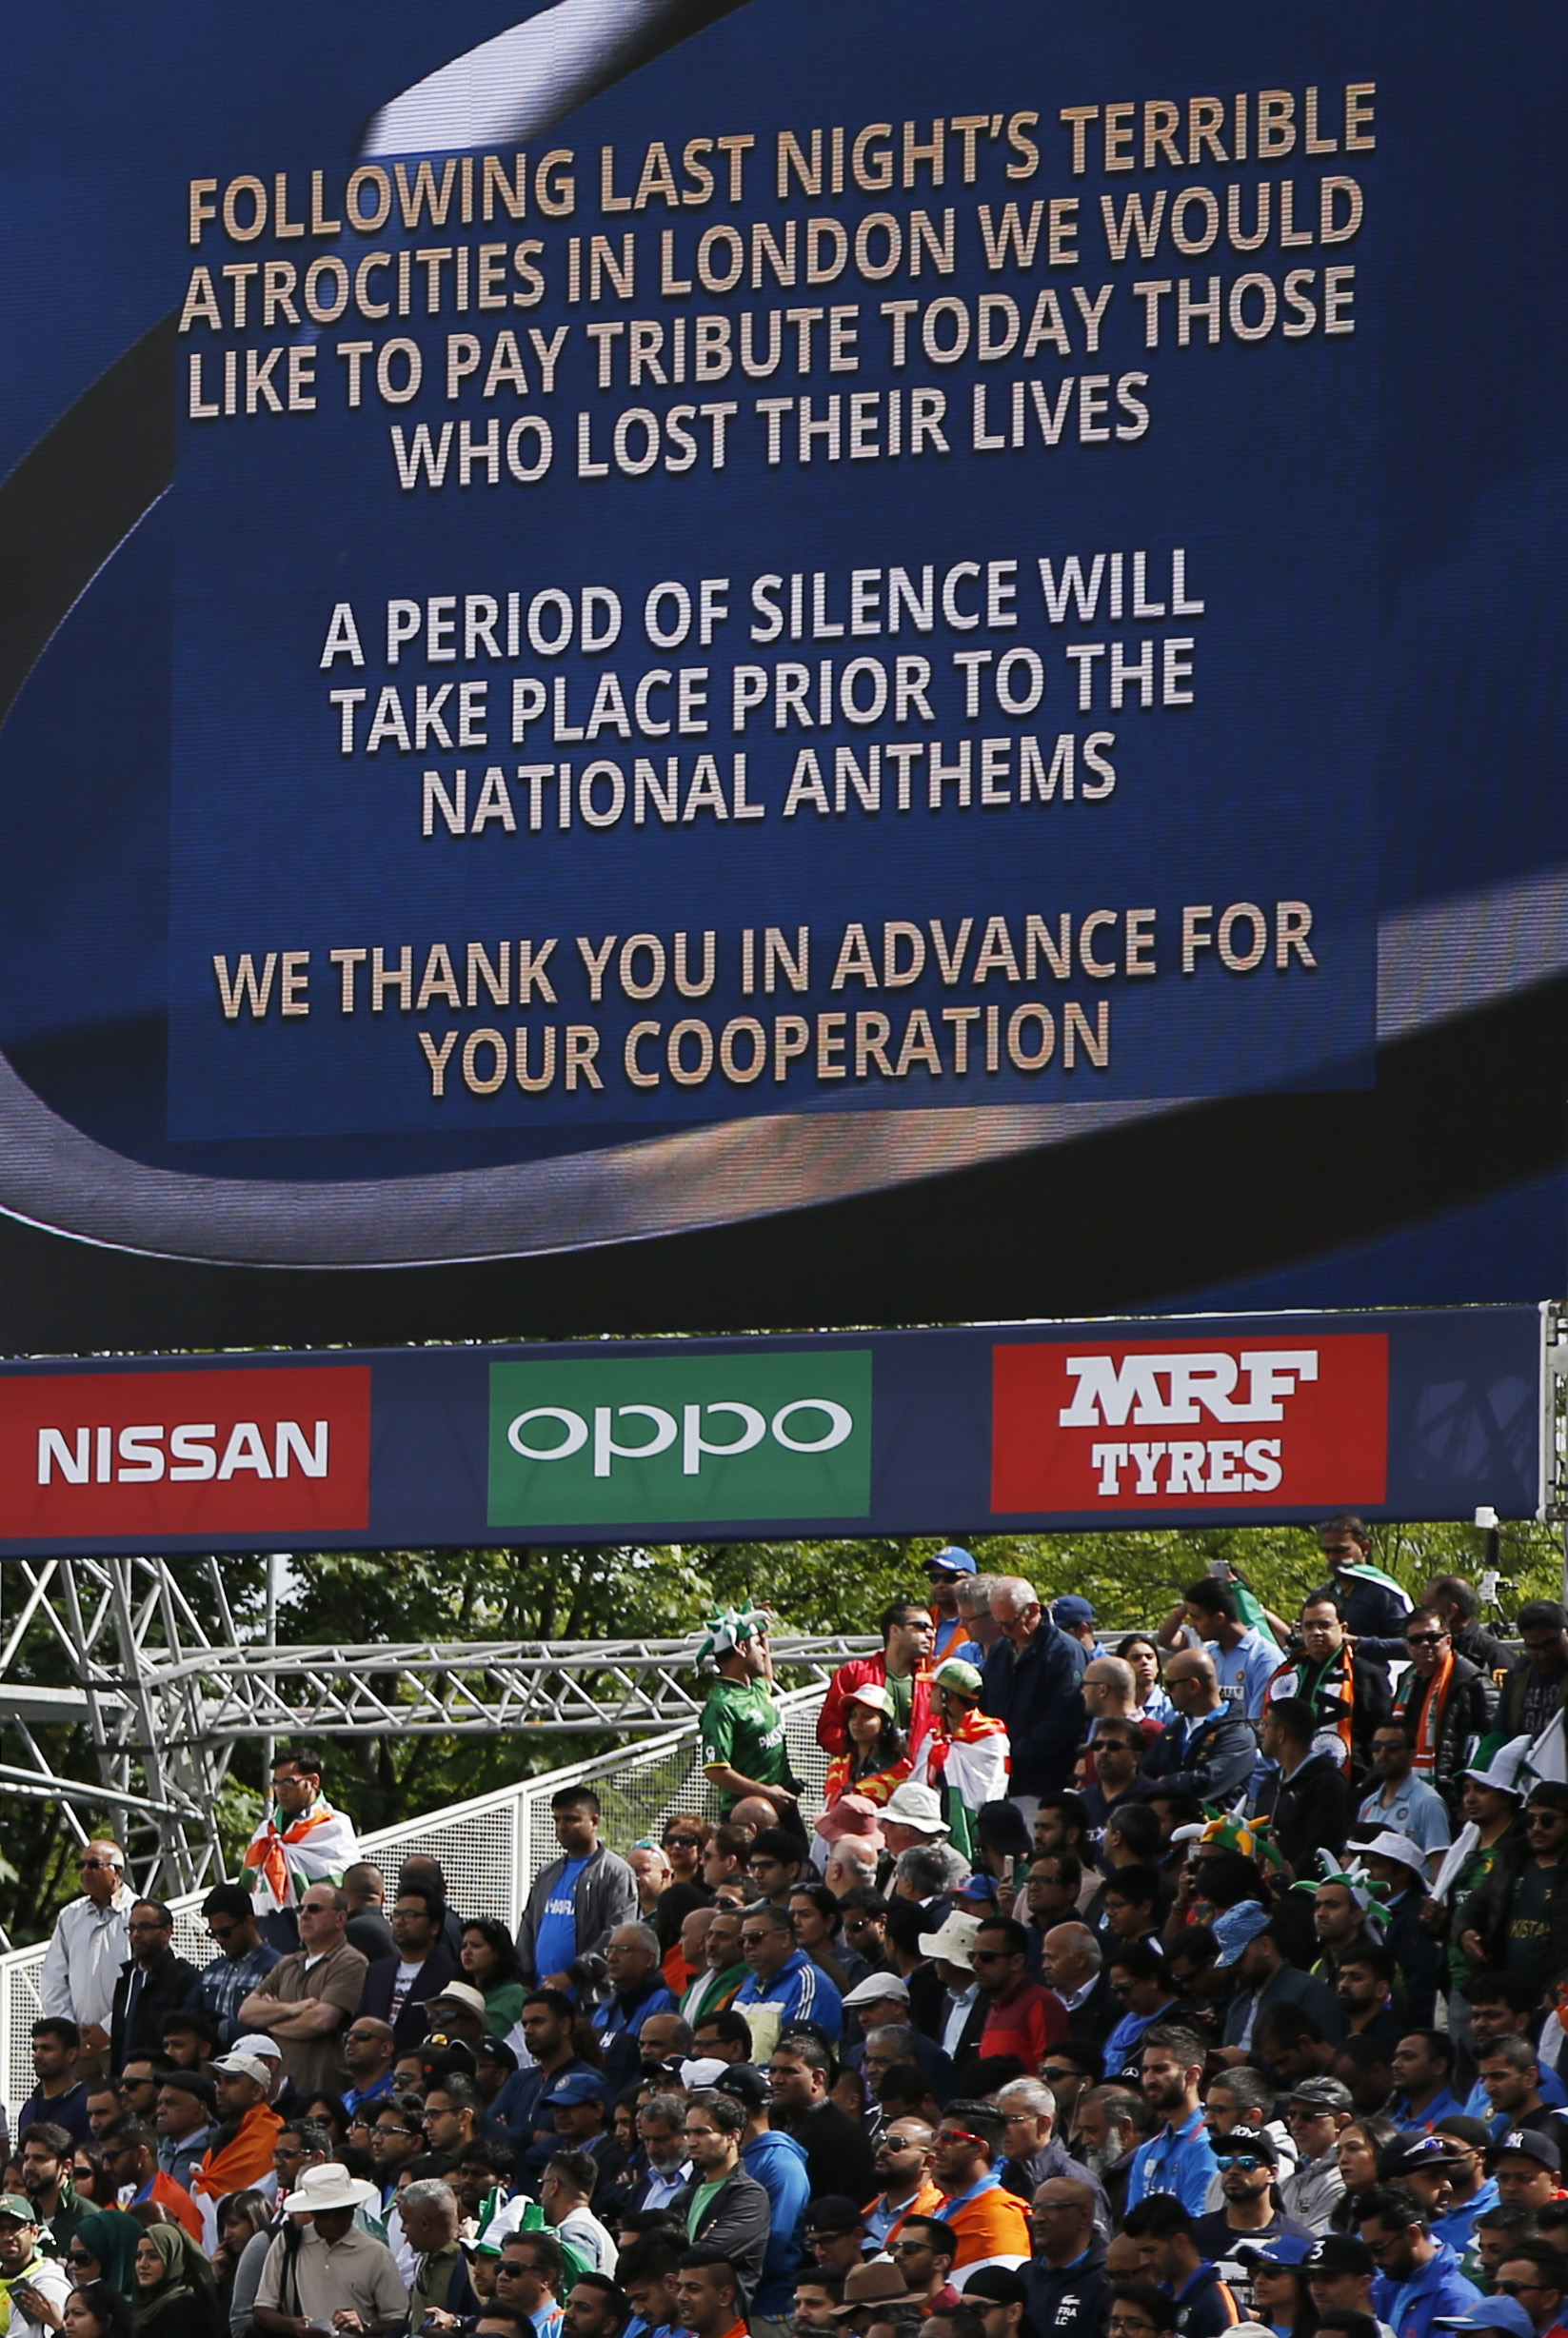 A message is displayed on the big screen before the match in relation to the recent London terror attack